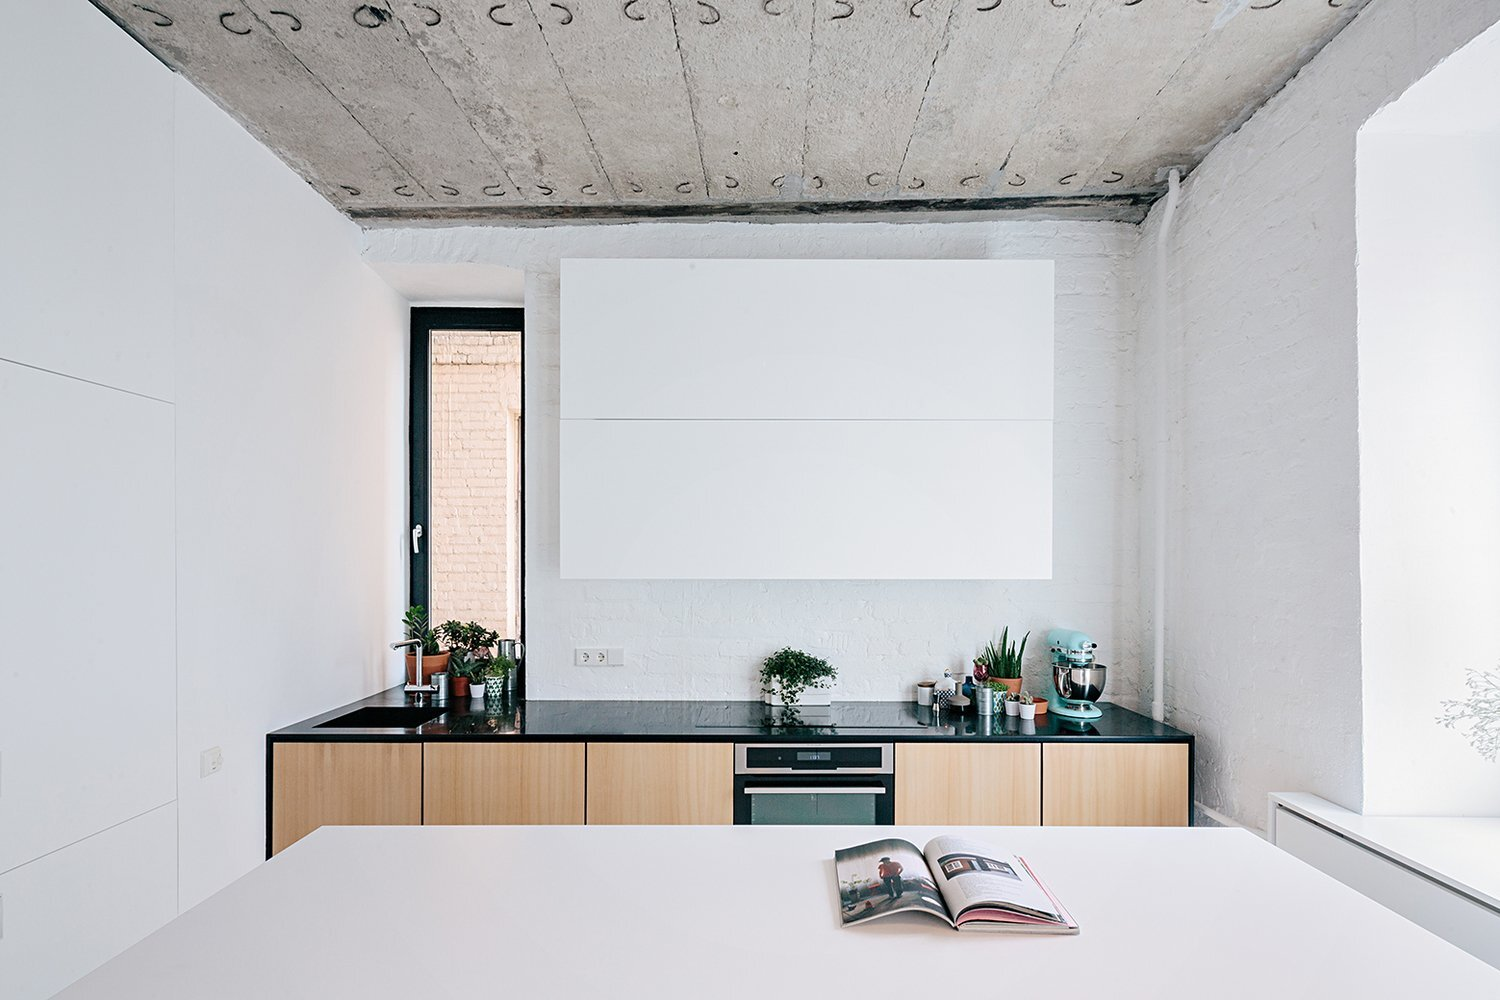 Black and White Apartment - Small Apartment - Crosby Studios - Russia - Kitchen - Humble Homes